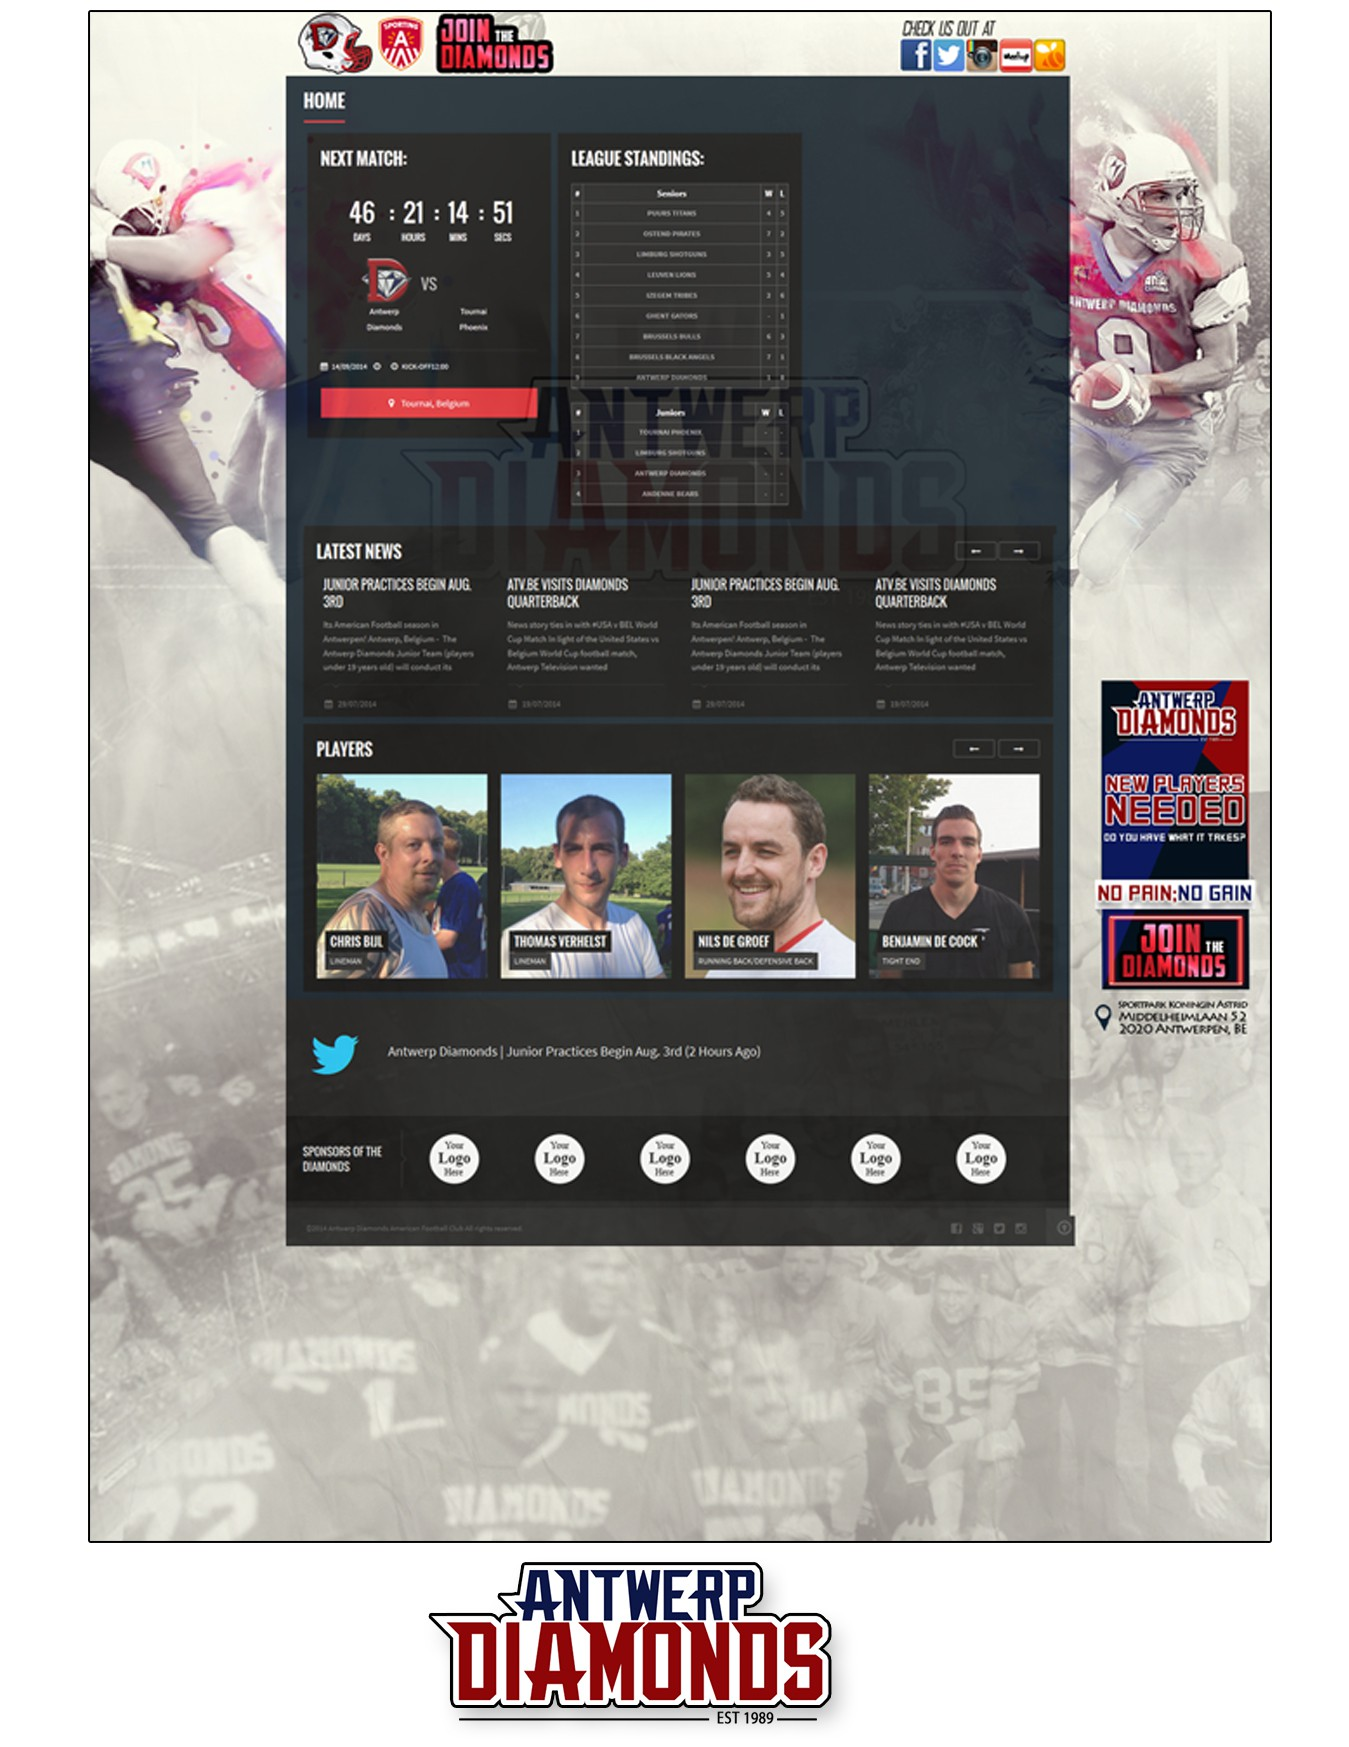 Cover Images for American Football team in Belgium!